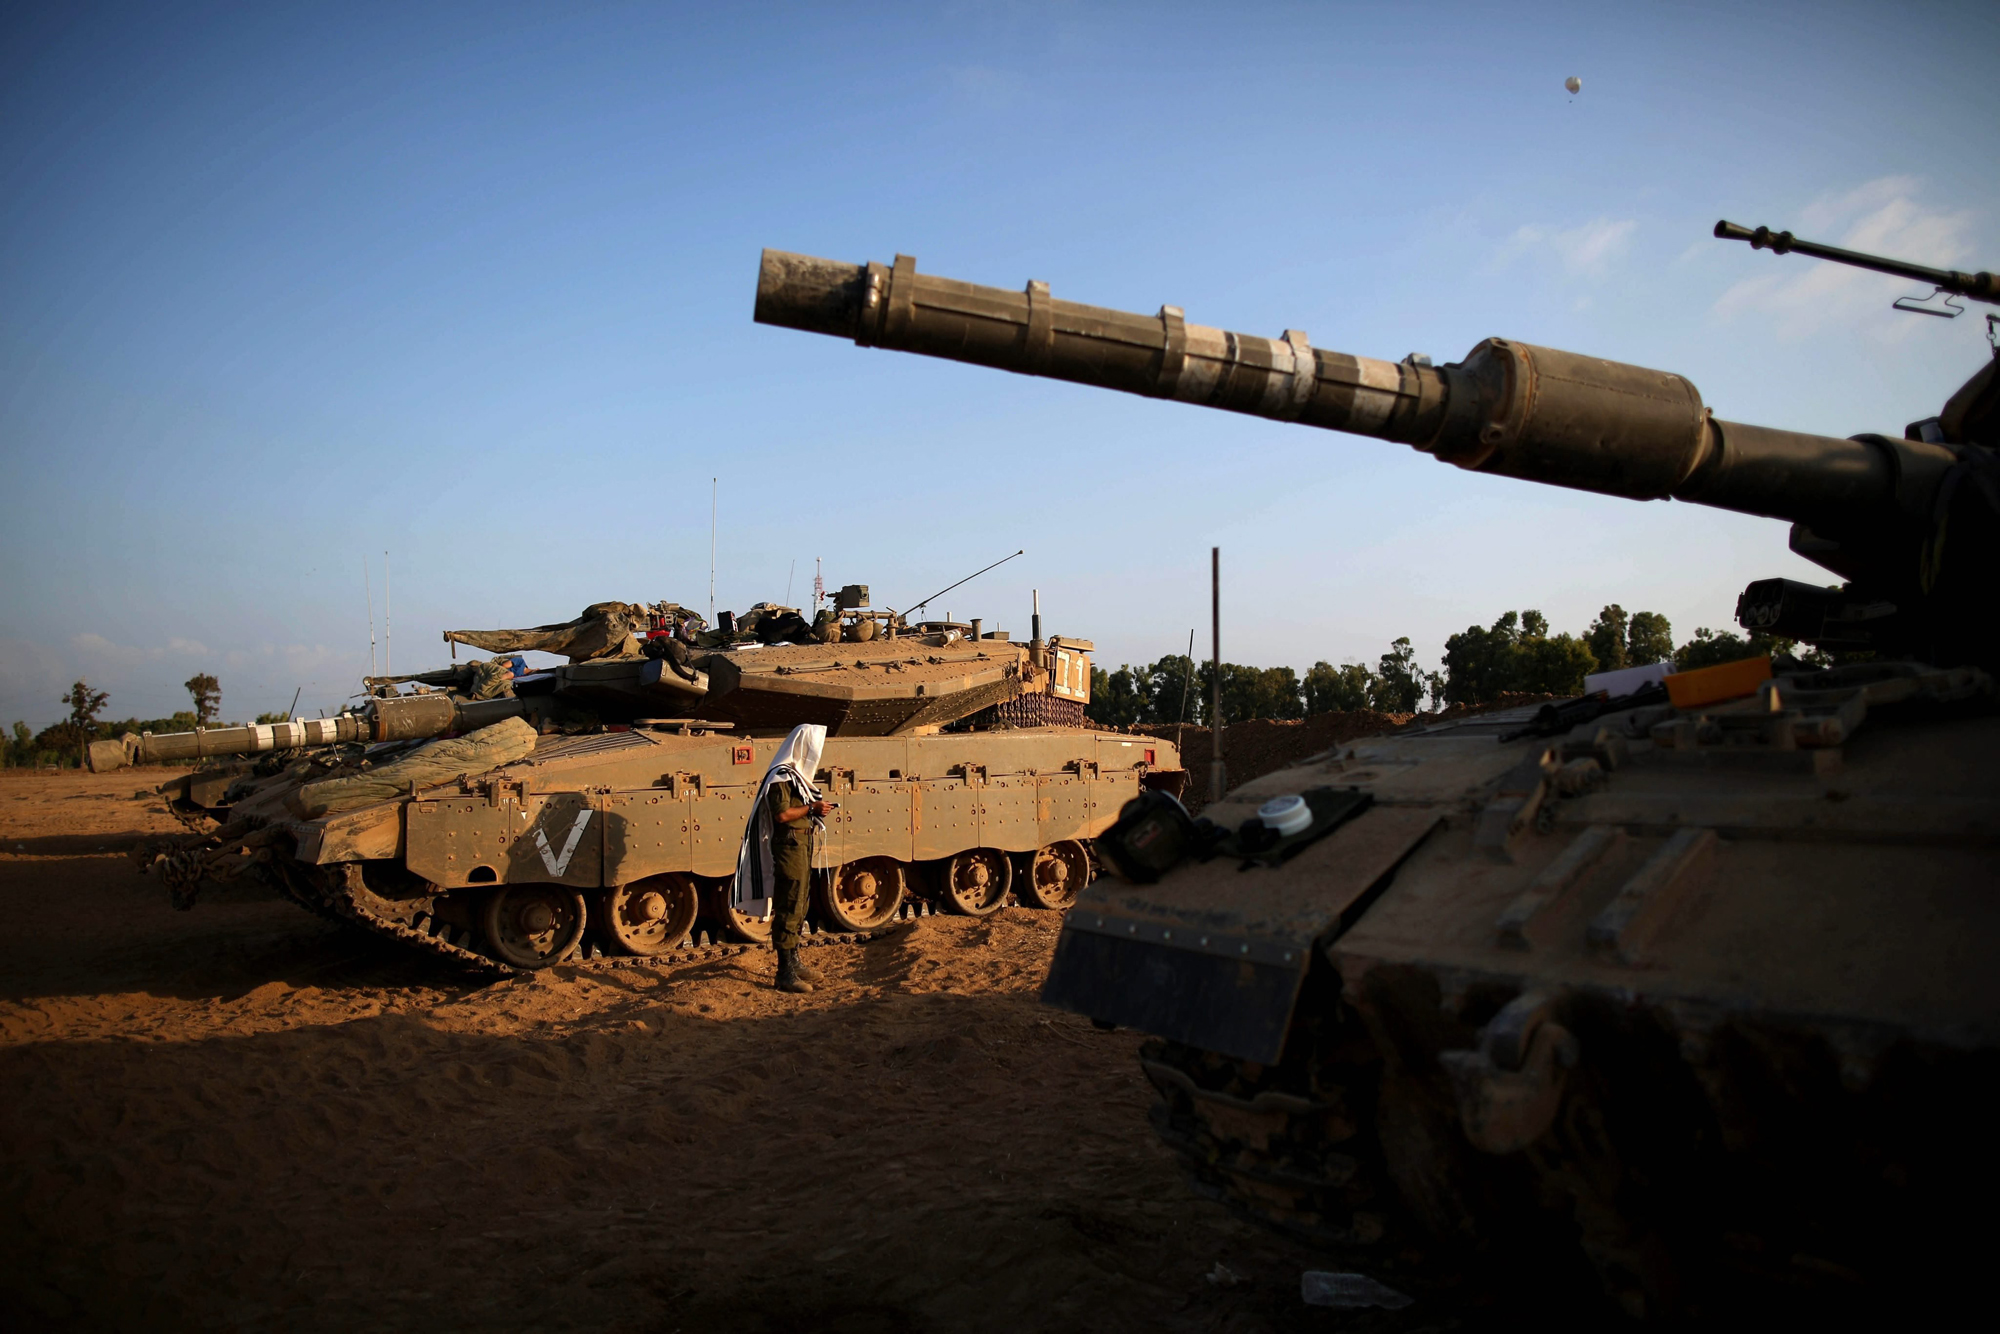 An Israeli soldier prays next to Merkava tanks at an unspecified location near the Israeli border with the Gaza Strip, Aug. 6, 2014.